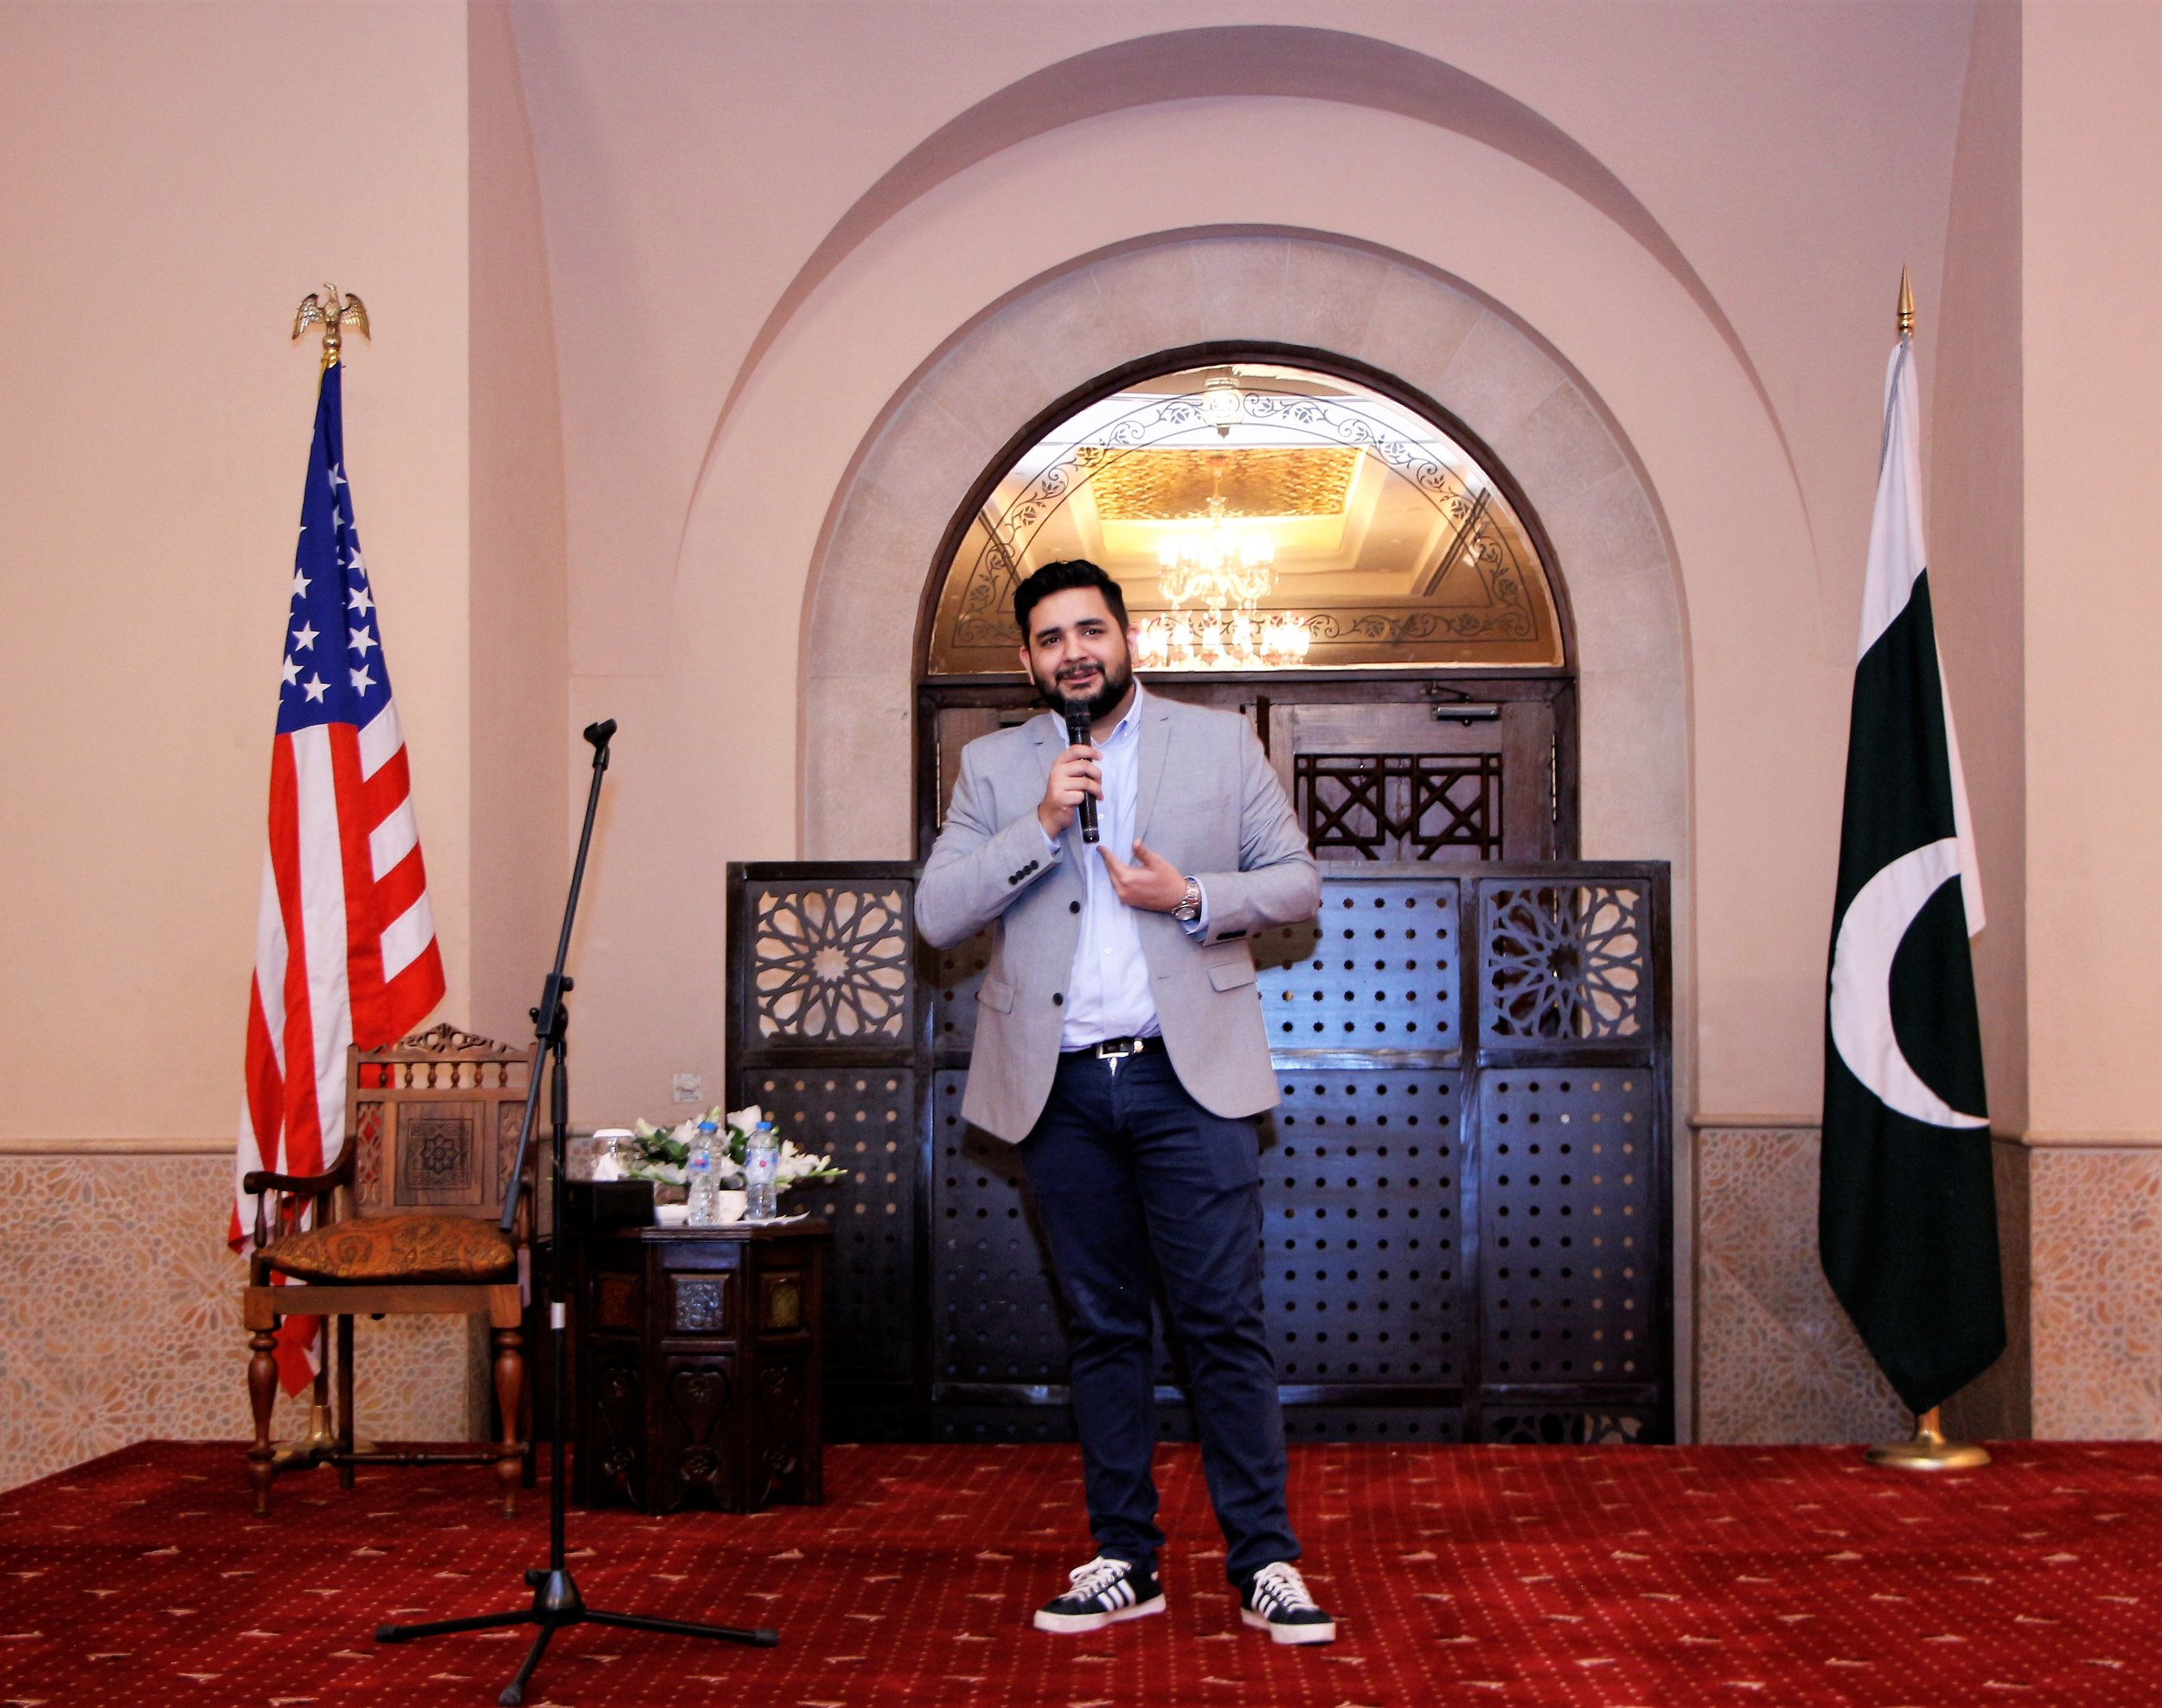 Stand - up comedy - Fulbright alumnus Shehzad Ghias is in the house!!